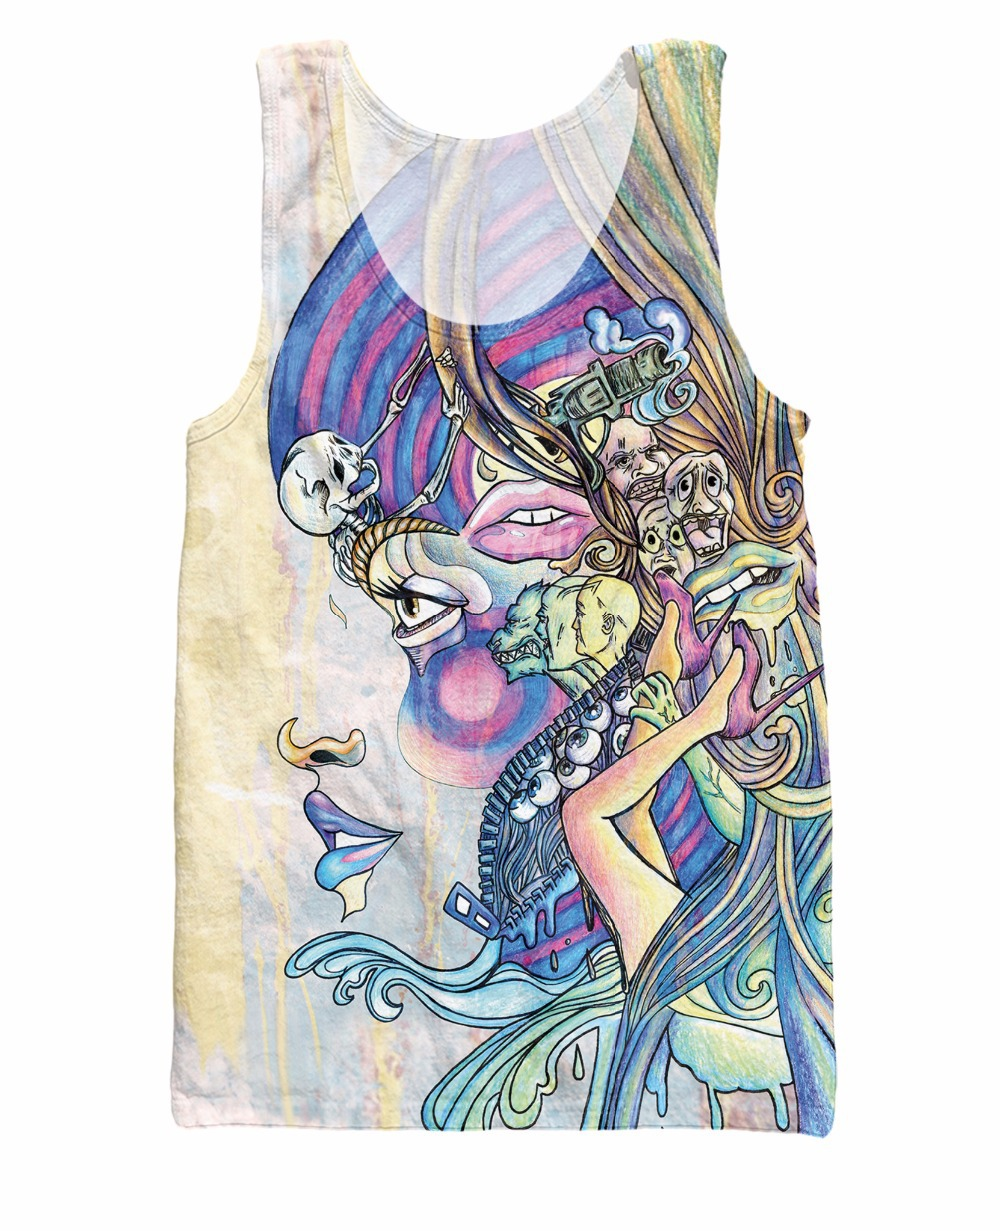 3b383f8d016 New Arrive Unisex Women Men 3d tee tops Fever Tank Top Fashion ...